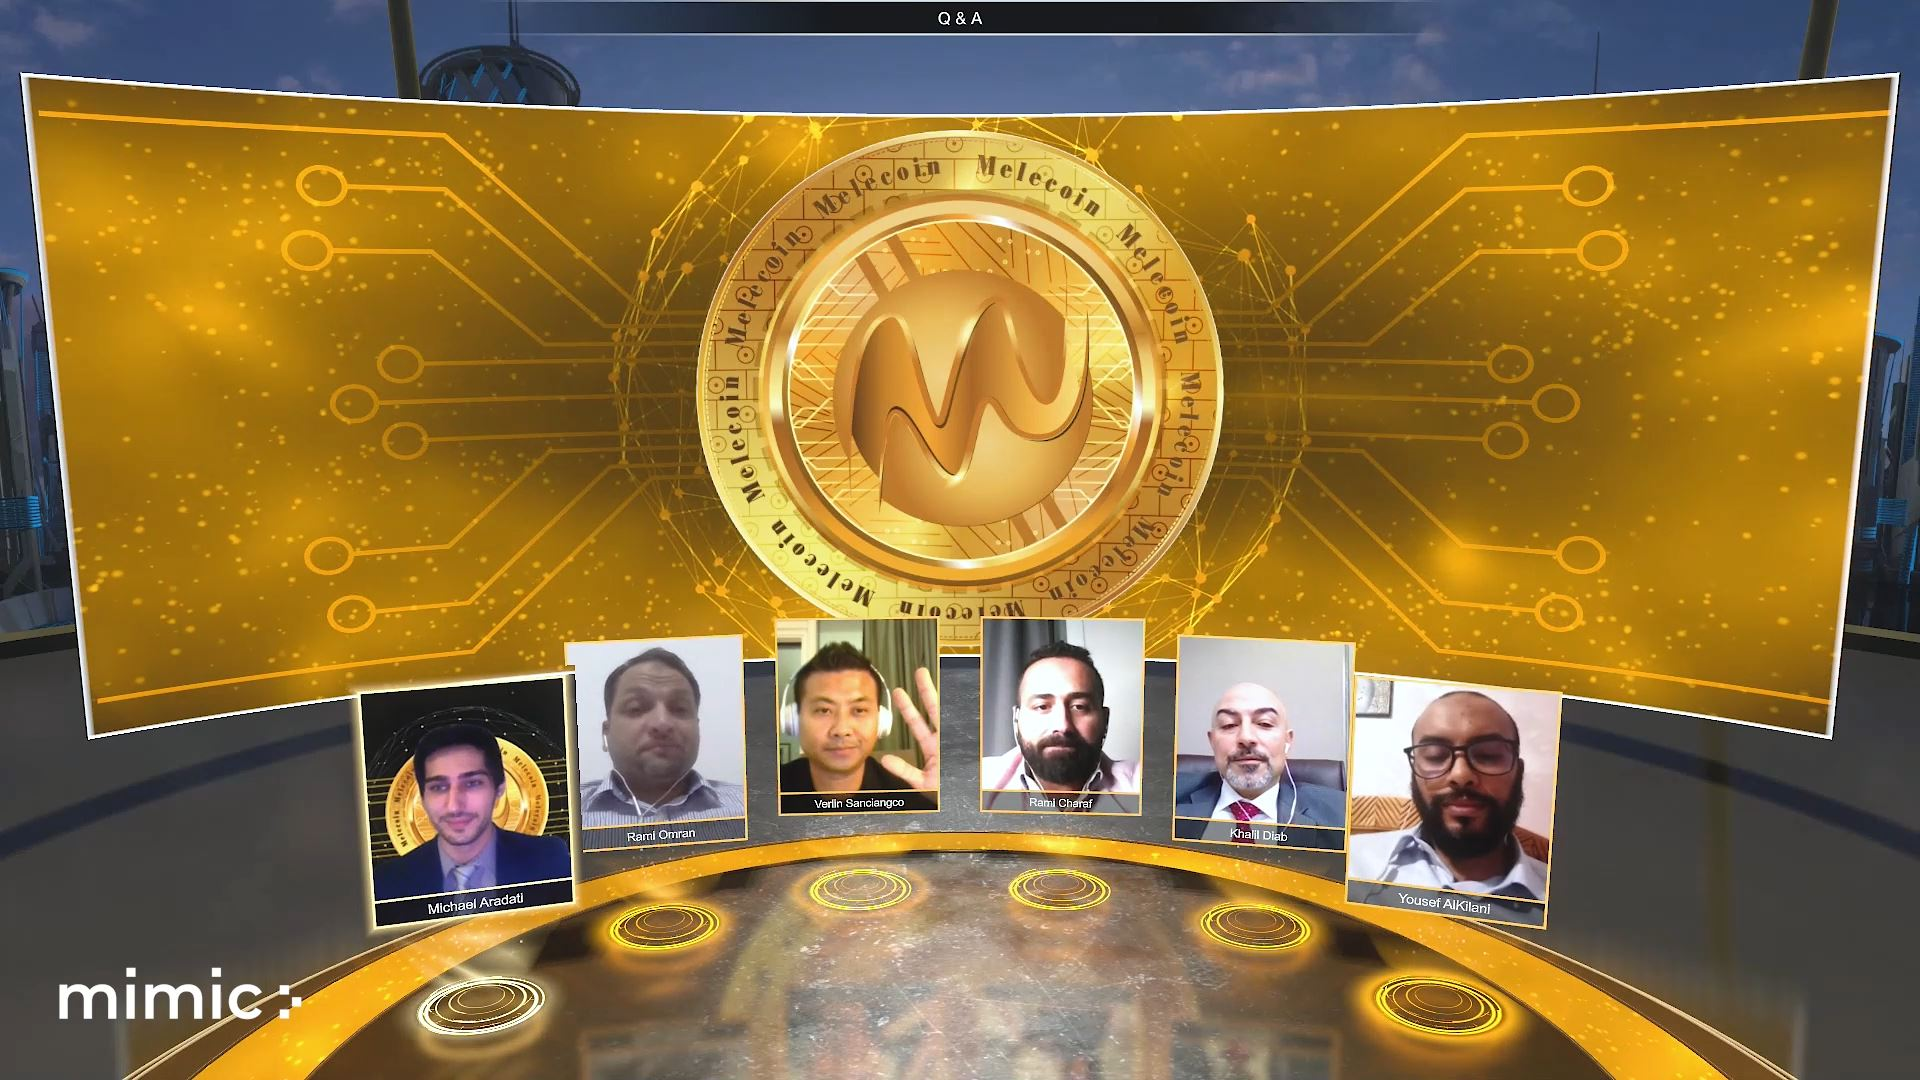 melecoin blockchain technology virtual event panel discussion